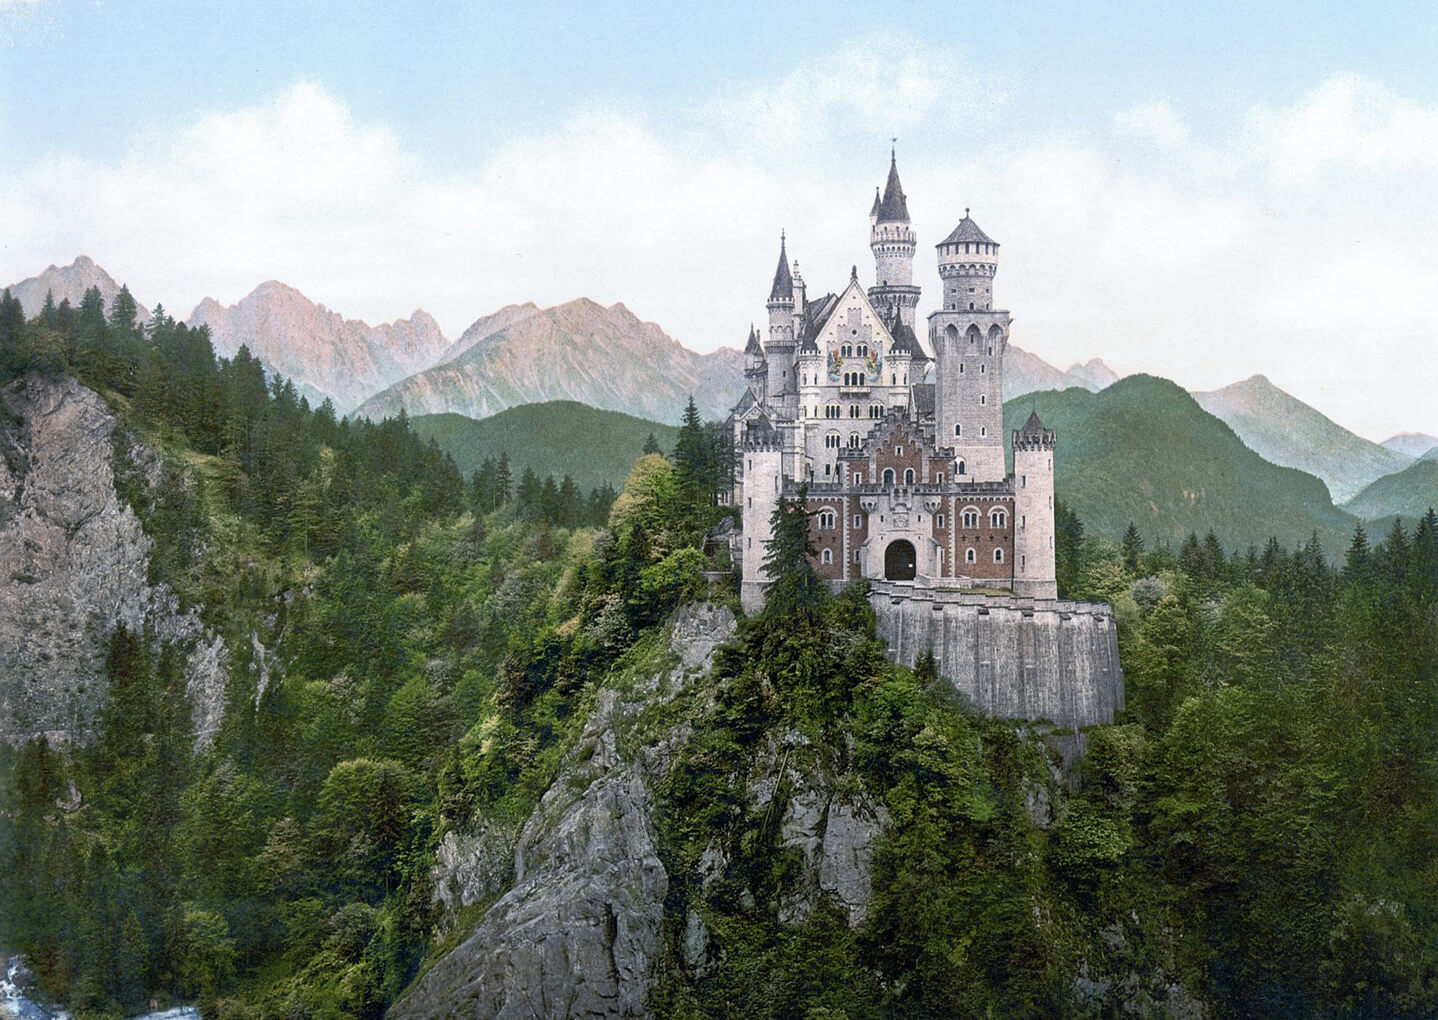 1,5 Million tourists from all over the world visit the Neuschwanstein Castle every year.